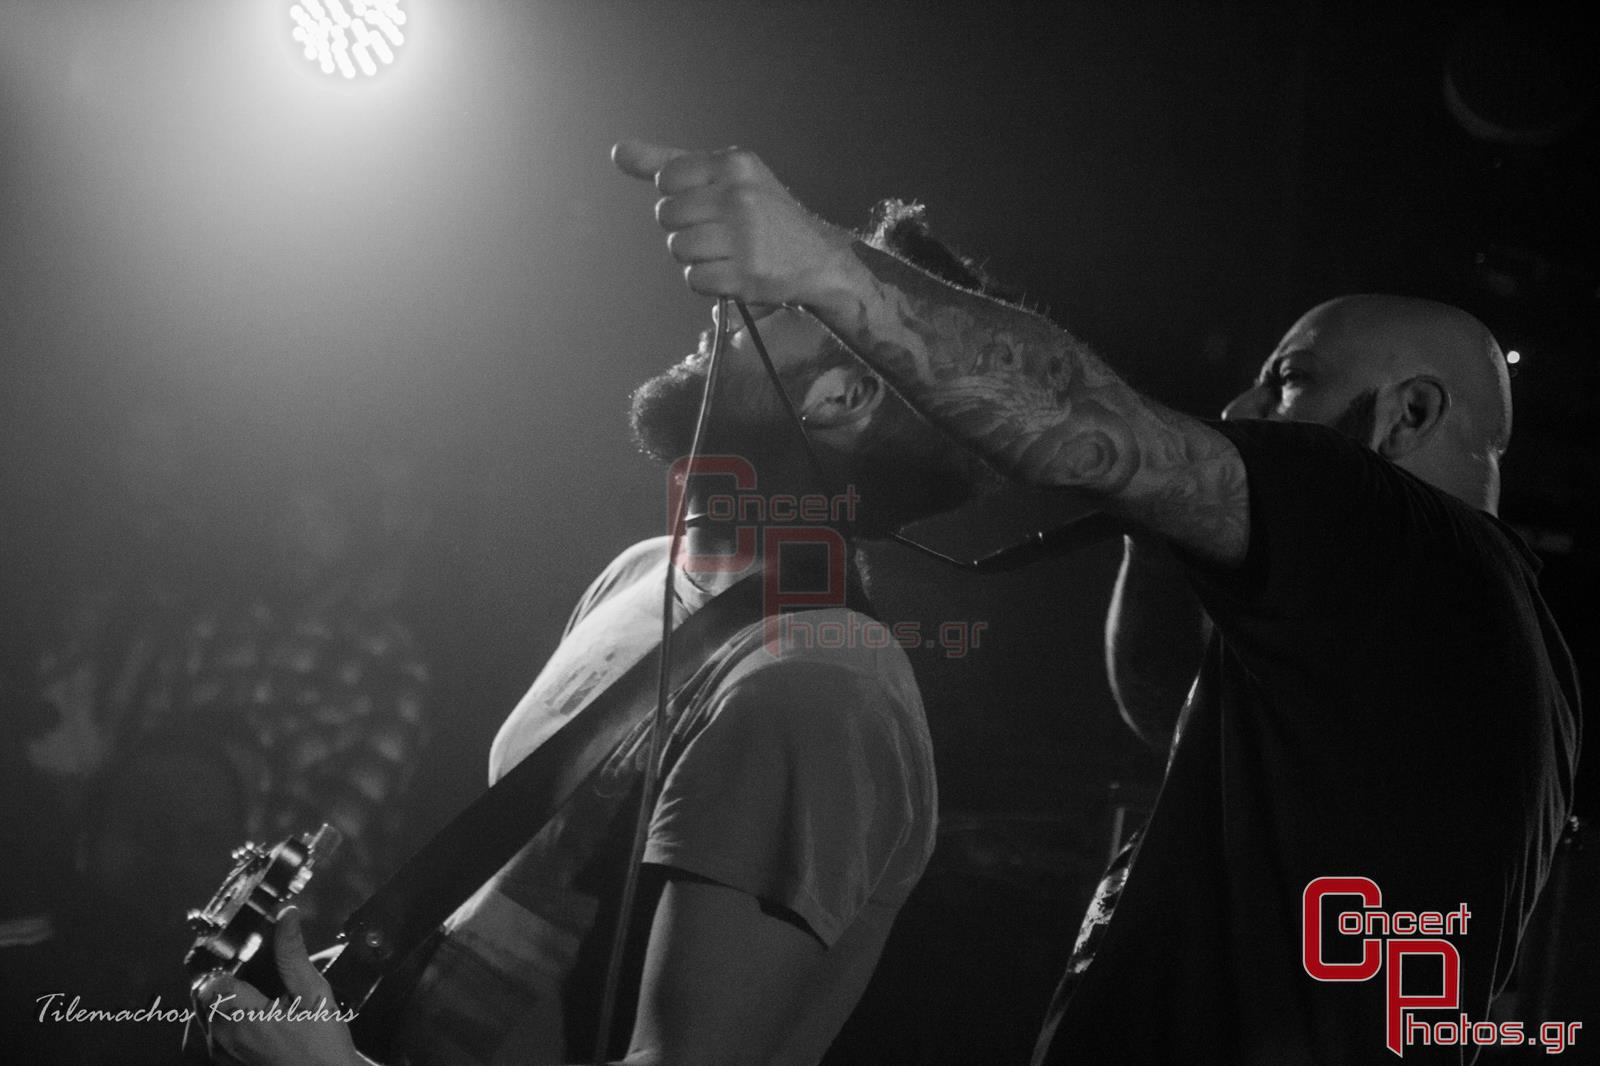 Nightstalker-Nightstalker AN Club photographer:  - concertphotos_-9